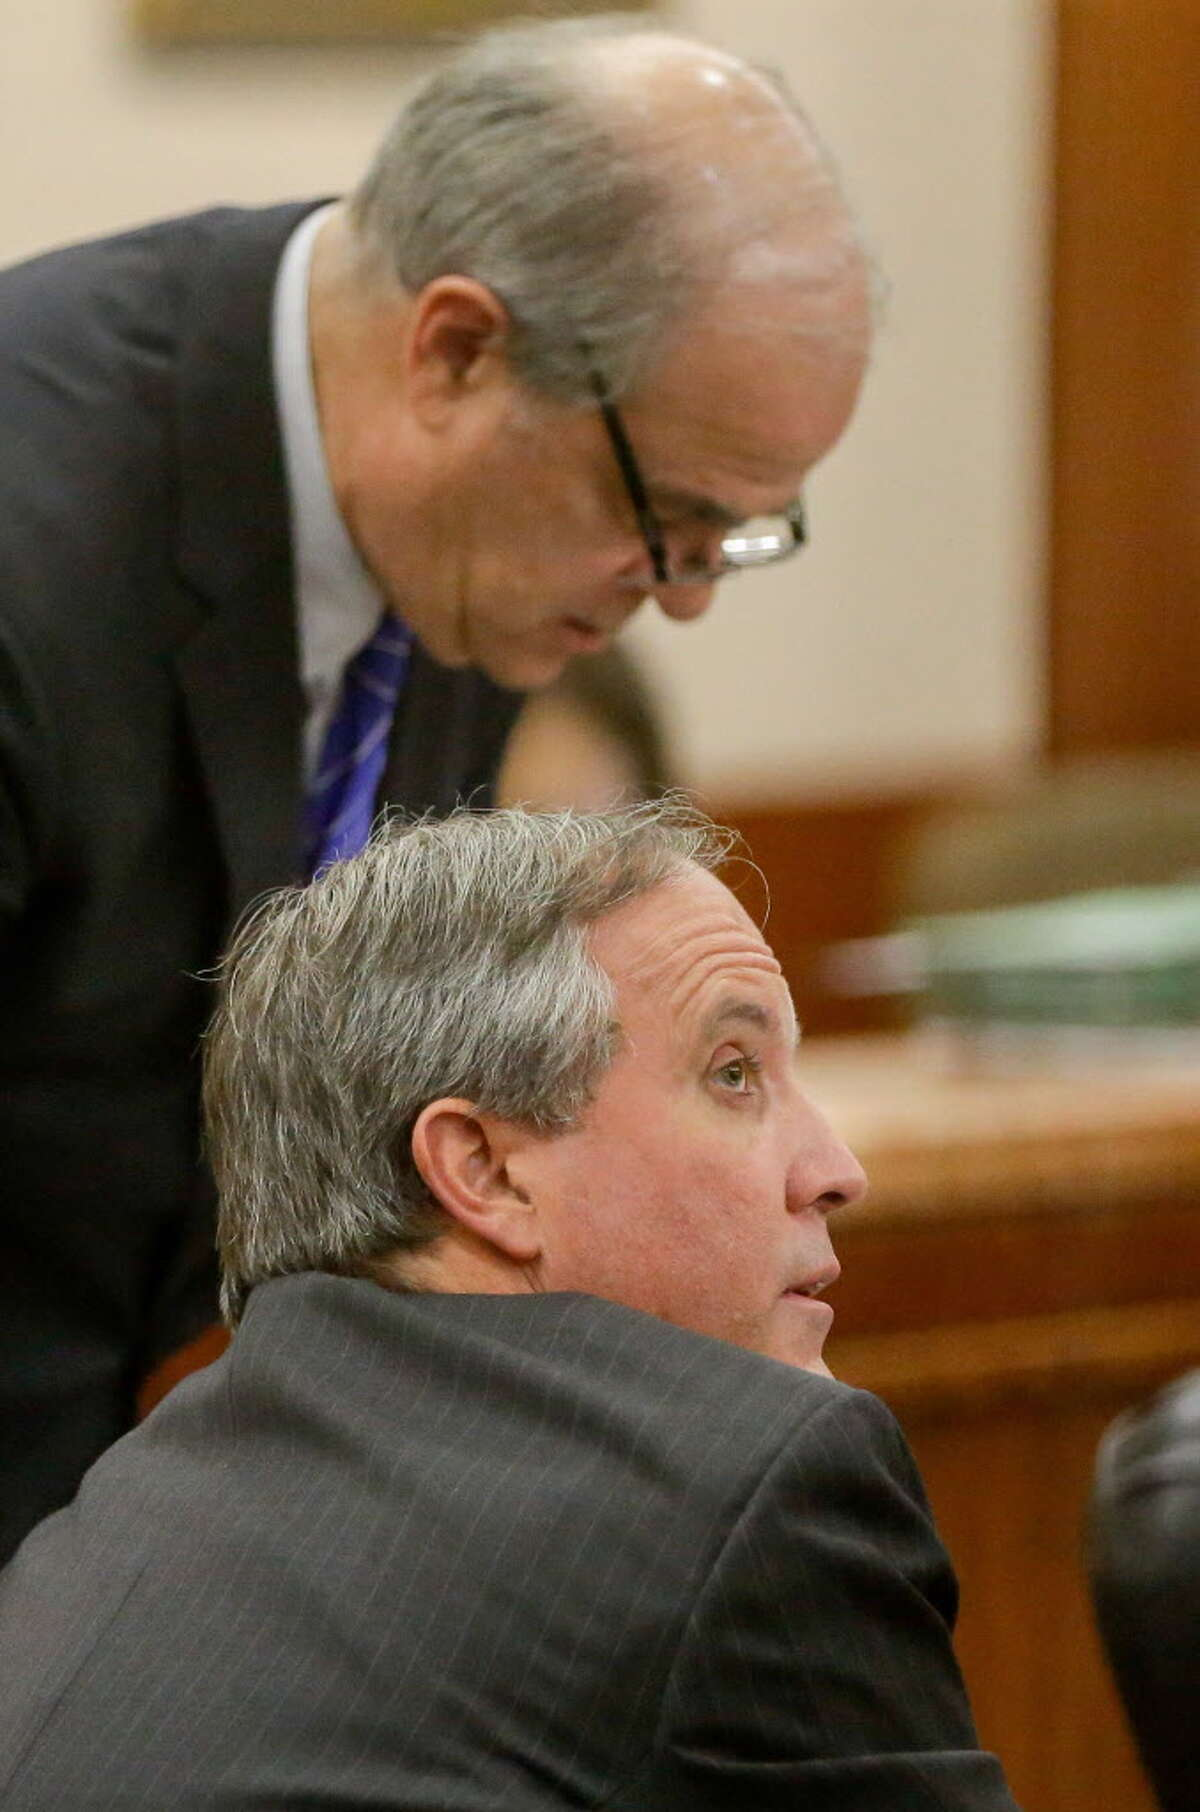 Texas Attorney General Ken Paxton, front, is shown with attorney Phil Hilder during a hearing in the Harris County Criminal 177th District Court of Judge Robert Johnson Thursday, July 27, 2017.